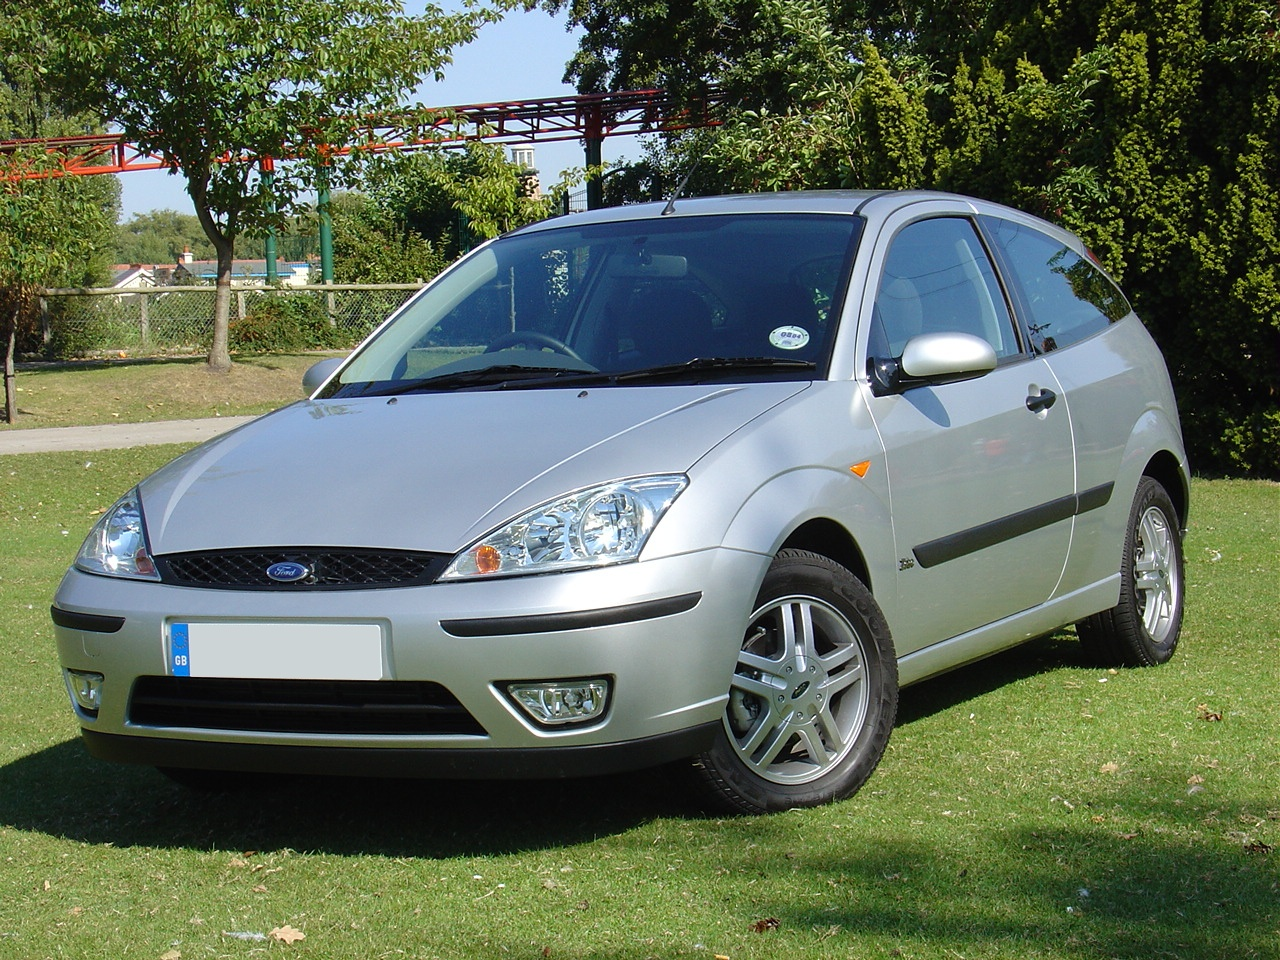 Ford_Focus_1.8_Zetec_(Europe)